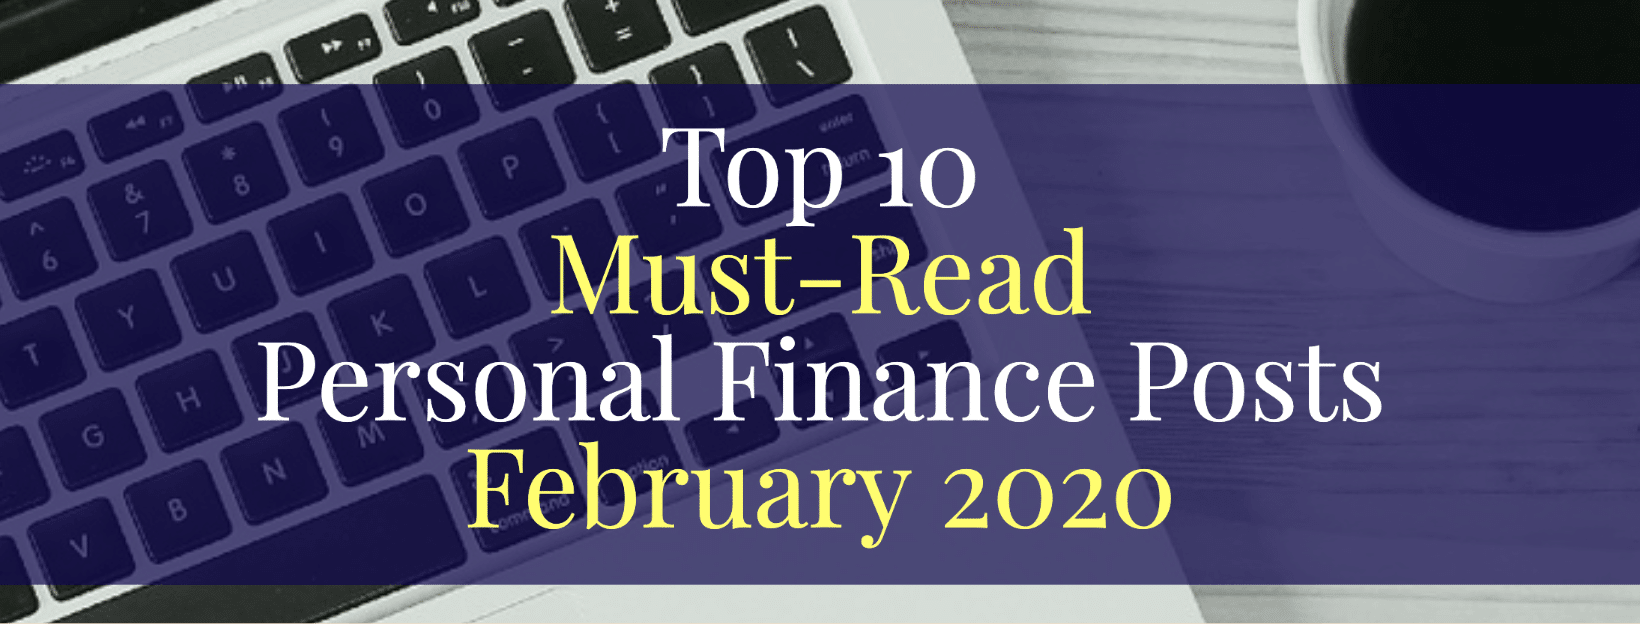 Top 10 Personal Finance Articles of the Month — February 2020